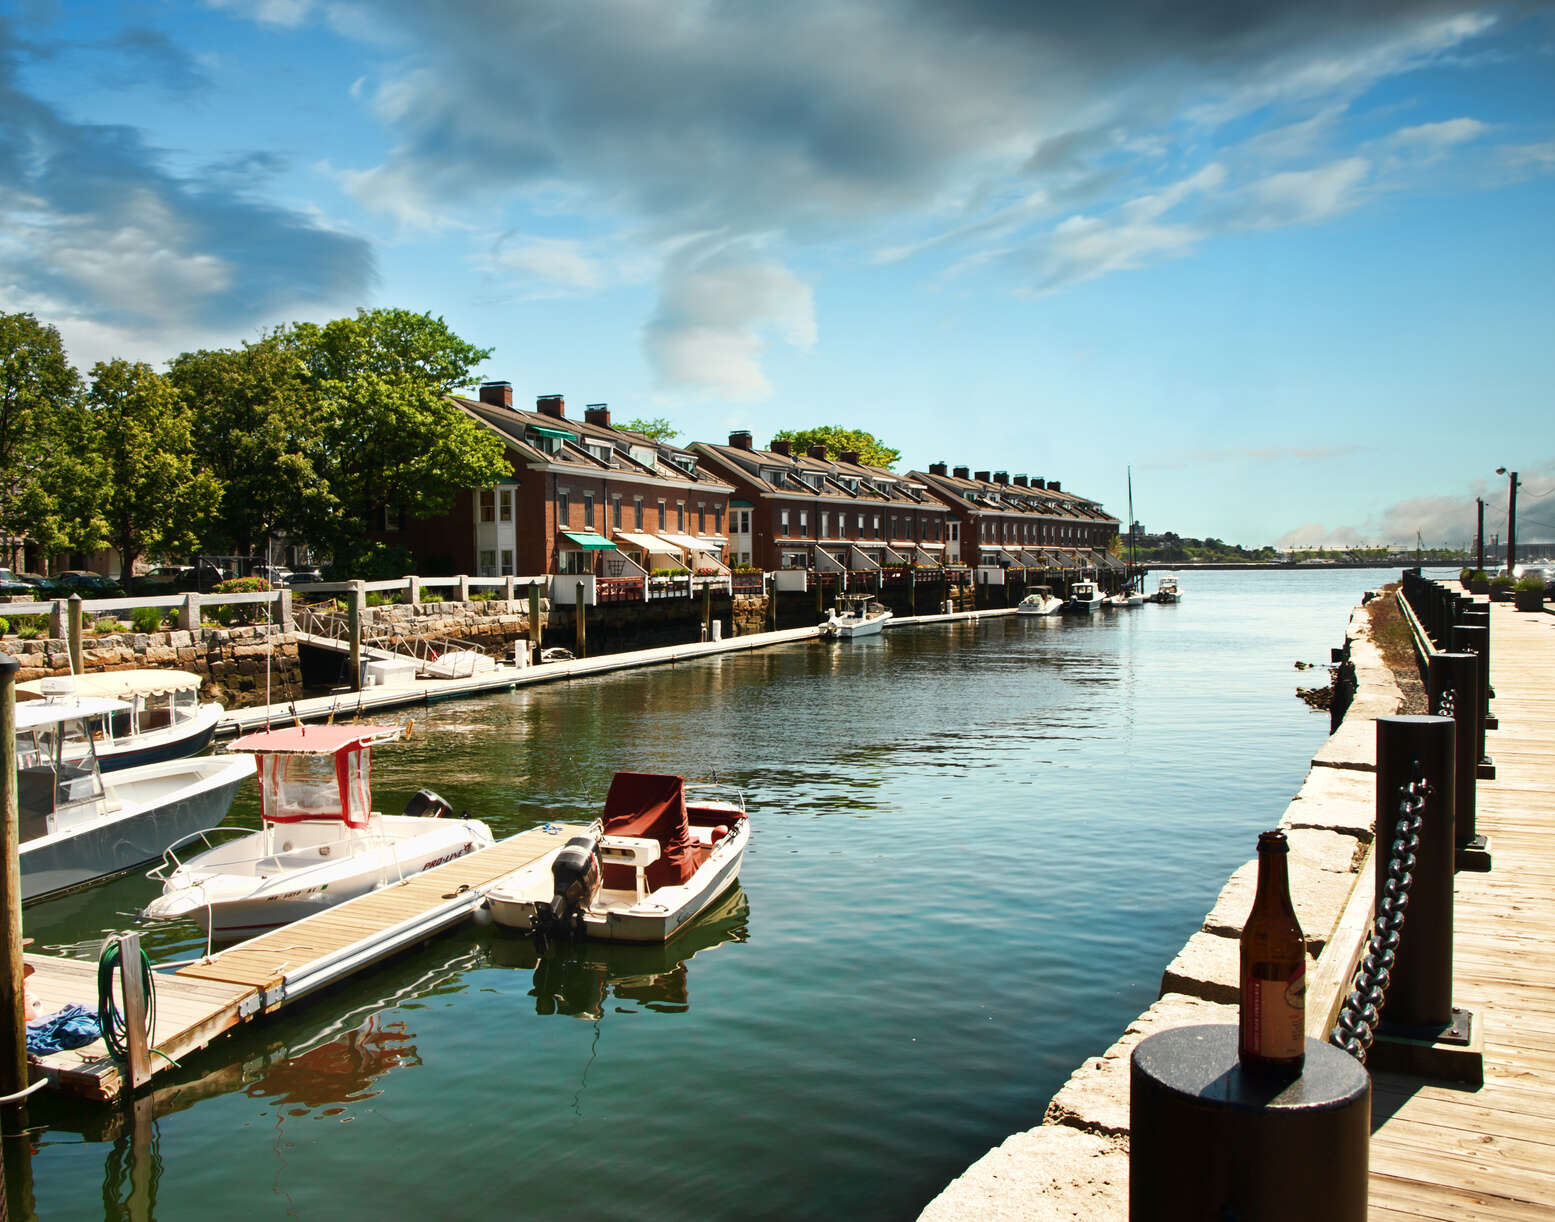 Discover Canada's Maritimes and New England By Cruiseship